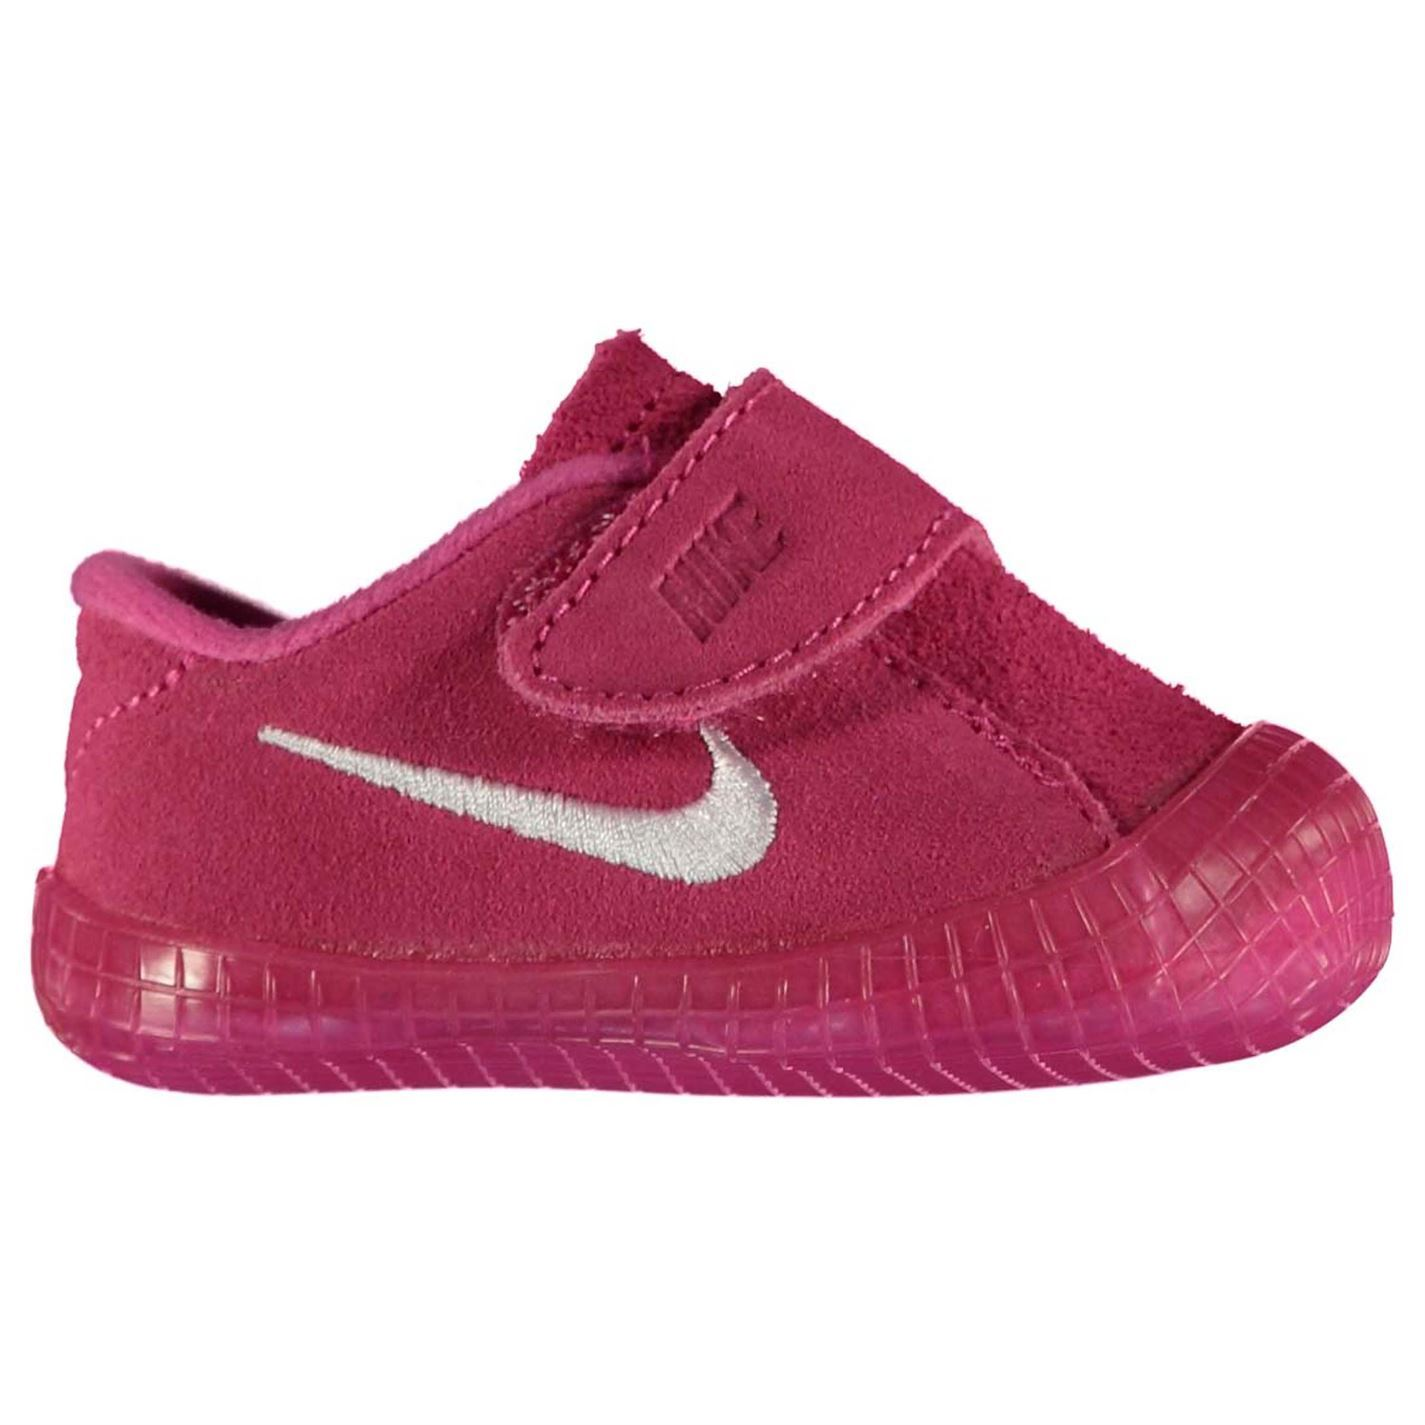 eab432835412 ... Nike Waffle 1 Crib Shoes Infant Baby Girls Pink White Babies Booties  Footwear ...